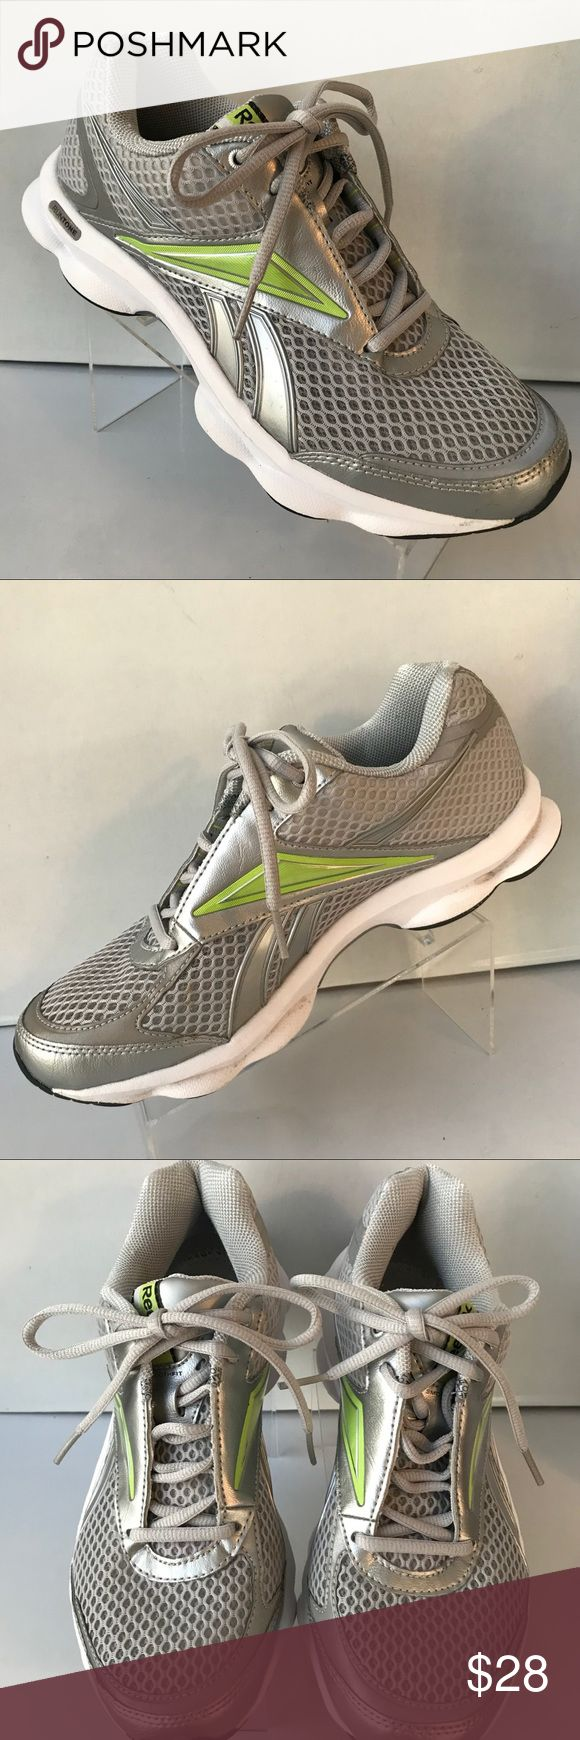 Like new insoles not included Reebok Women 7.5 Gray Silver lime electric Green Athletic Running tennis shoes Ex Condition NO INSOLES they will be included but fabric has been glued see picture selling less expensive #8070 Reebok Shoes Athletic Shoes